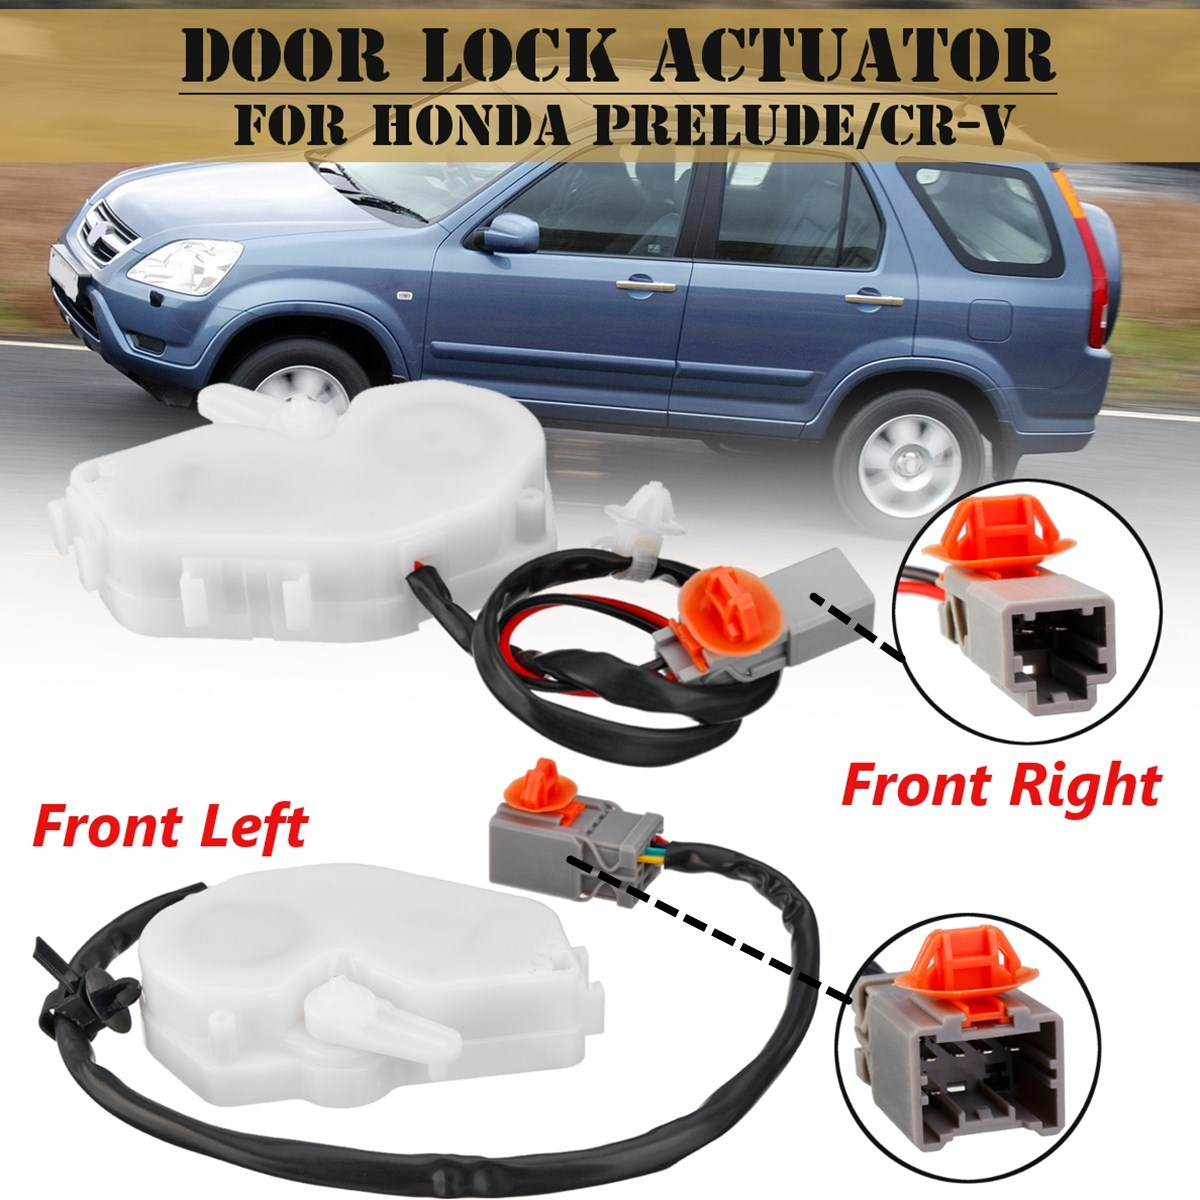 Front Left Right Side 72155S03J11 72115S03G11 Central Door Lock Actuator For <font><b>Honda</b></font> for <font><b>Cr</b></font>-<font><b>V</b></font> Prelude <font><b>1997</b></font> 1998 1999 2000 <font><b>2001</b></font> image